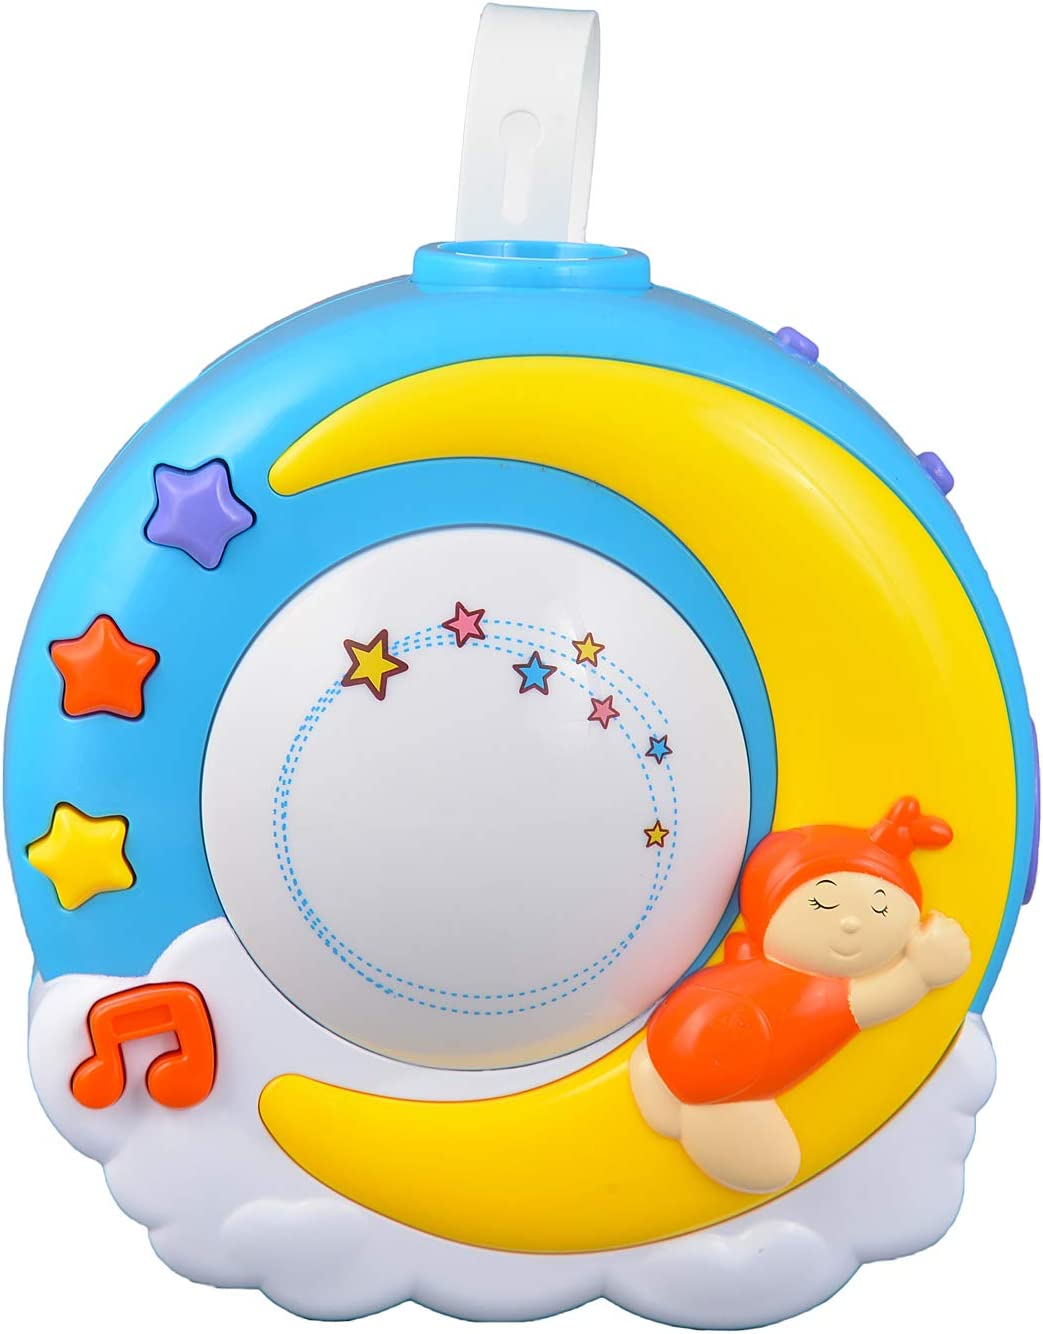 Baby Night Light Projector With Music Nursery Lamp For Crib With Self Timer Soothing Sleep Aid With Nature Sounds And Lullabies Price In Uae Amazon Uae Kanbkam